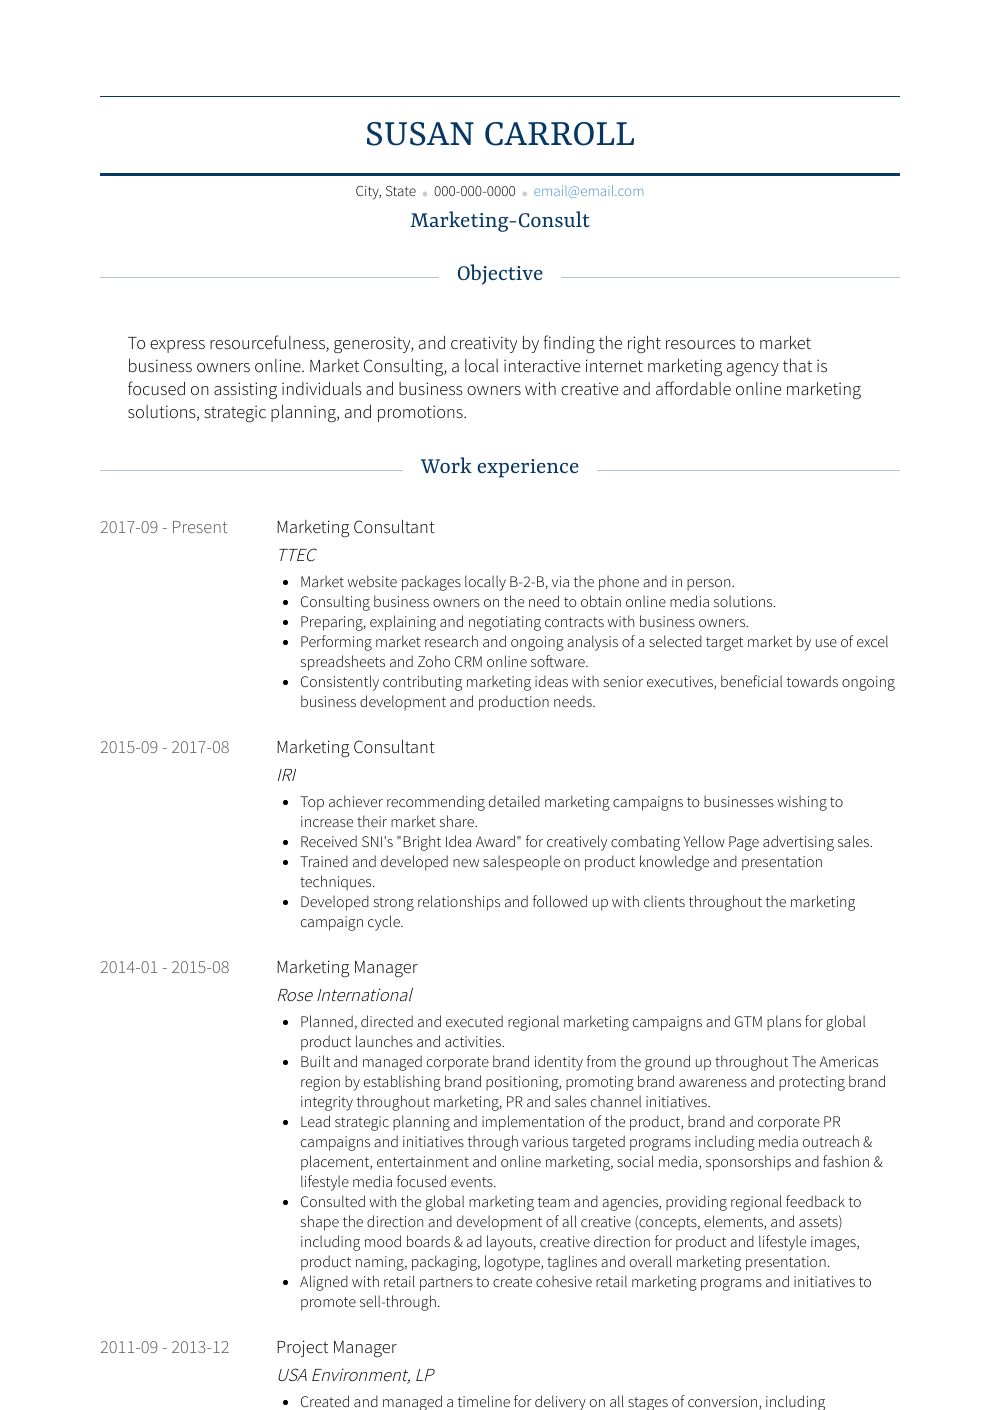 Marketing Consultant - Resume Samples and Templates | VisualCV